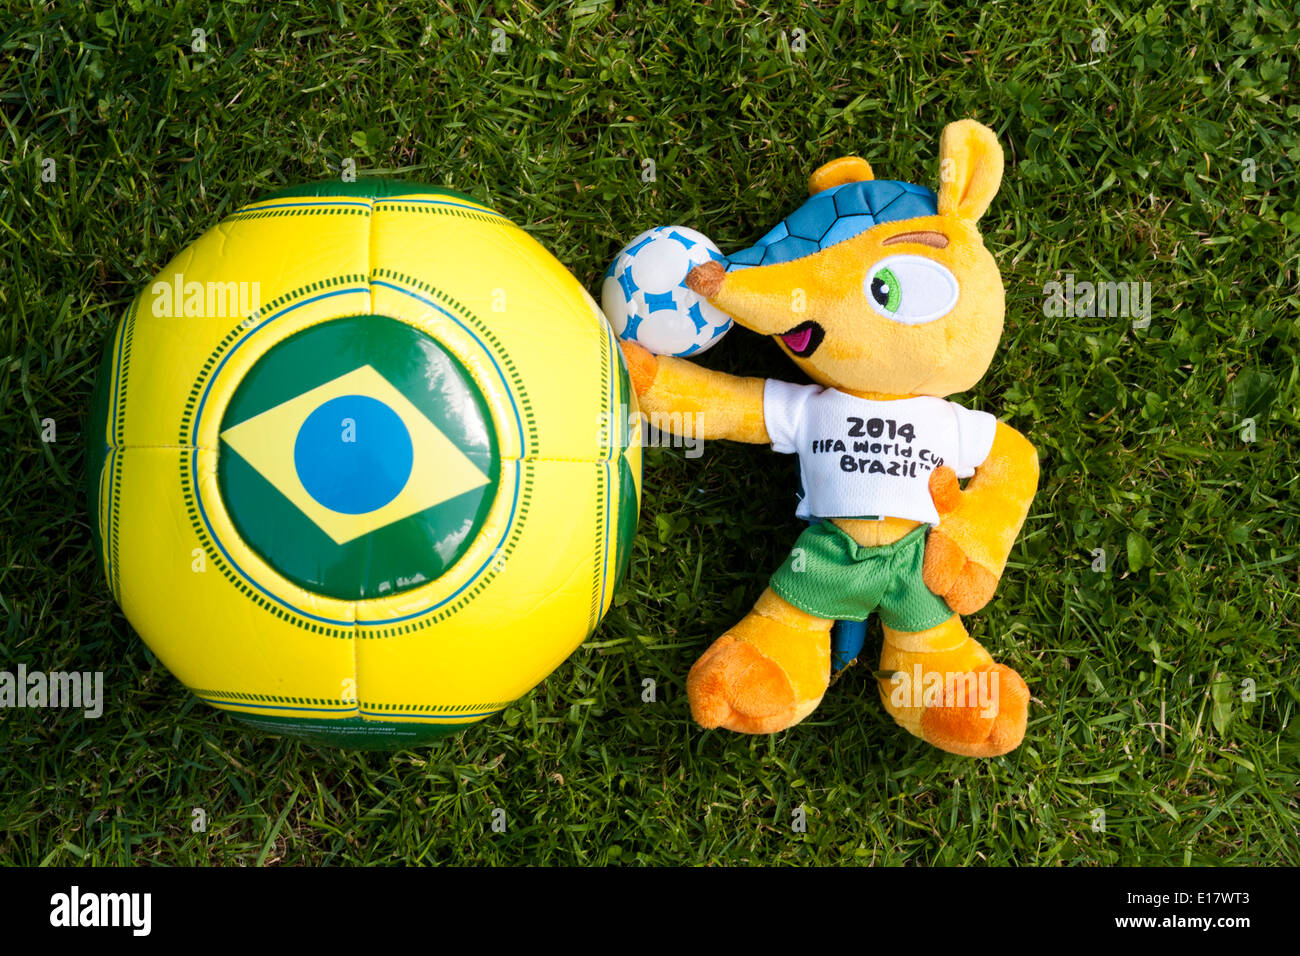 """""""Fuleco the Armadillo"""" Mascot and football for Brazil World Cup 2014. Stock Photo"""